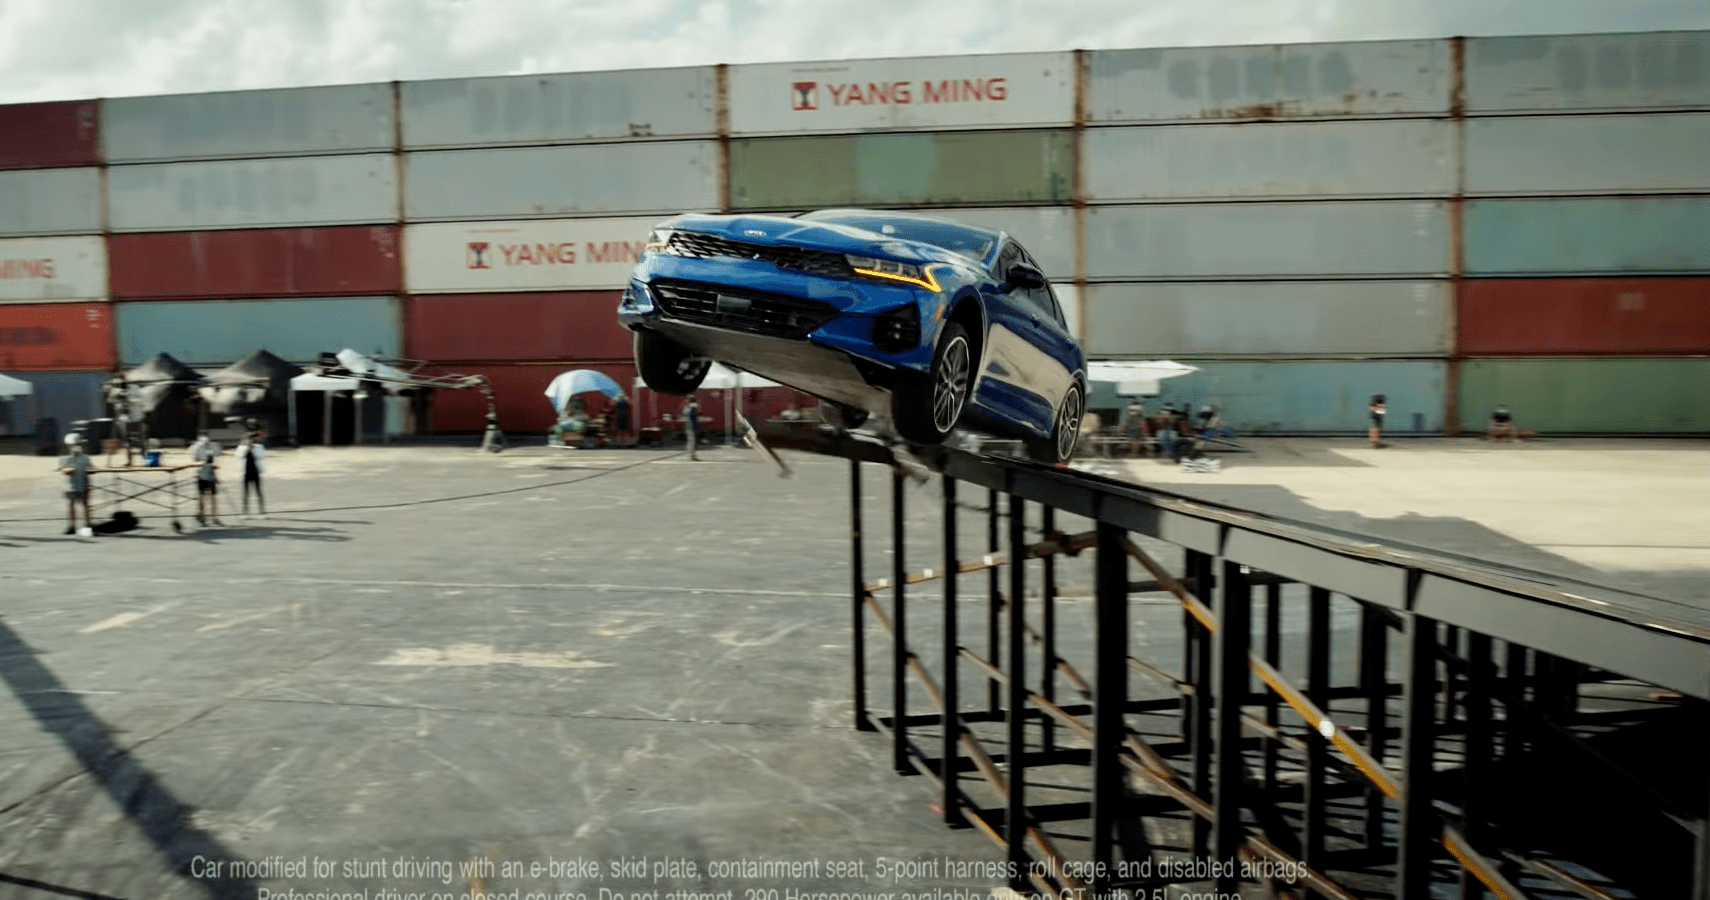 Watch Kia Complete An Impossible Stunt In The New K5 GT!